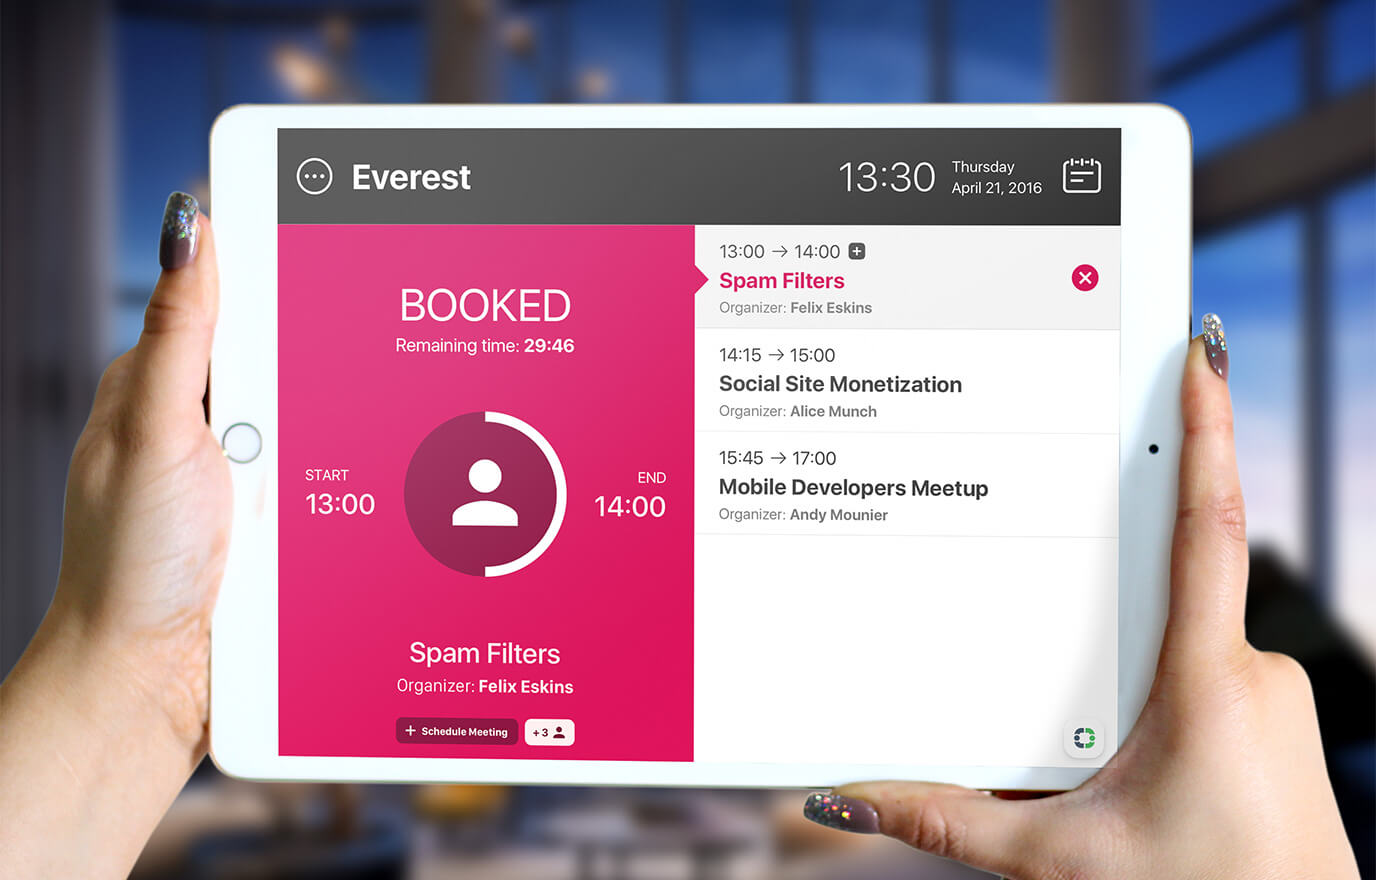 iOS meeting room booking app